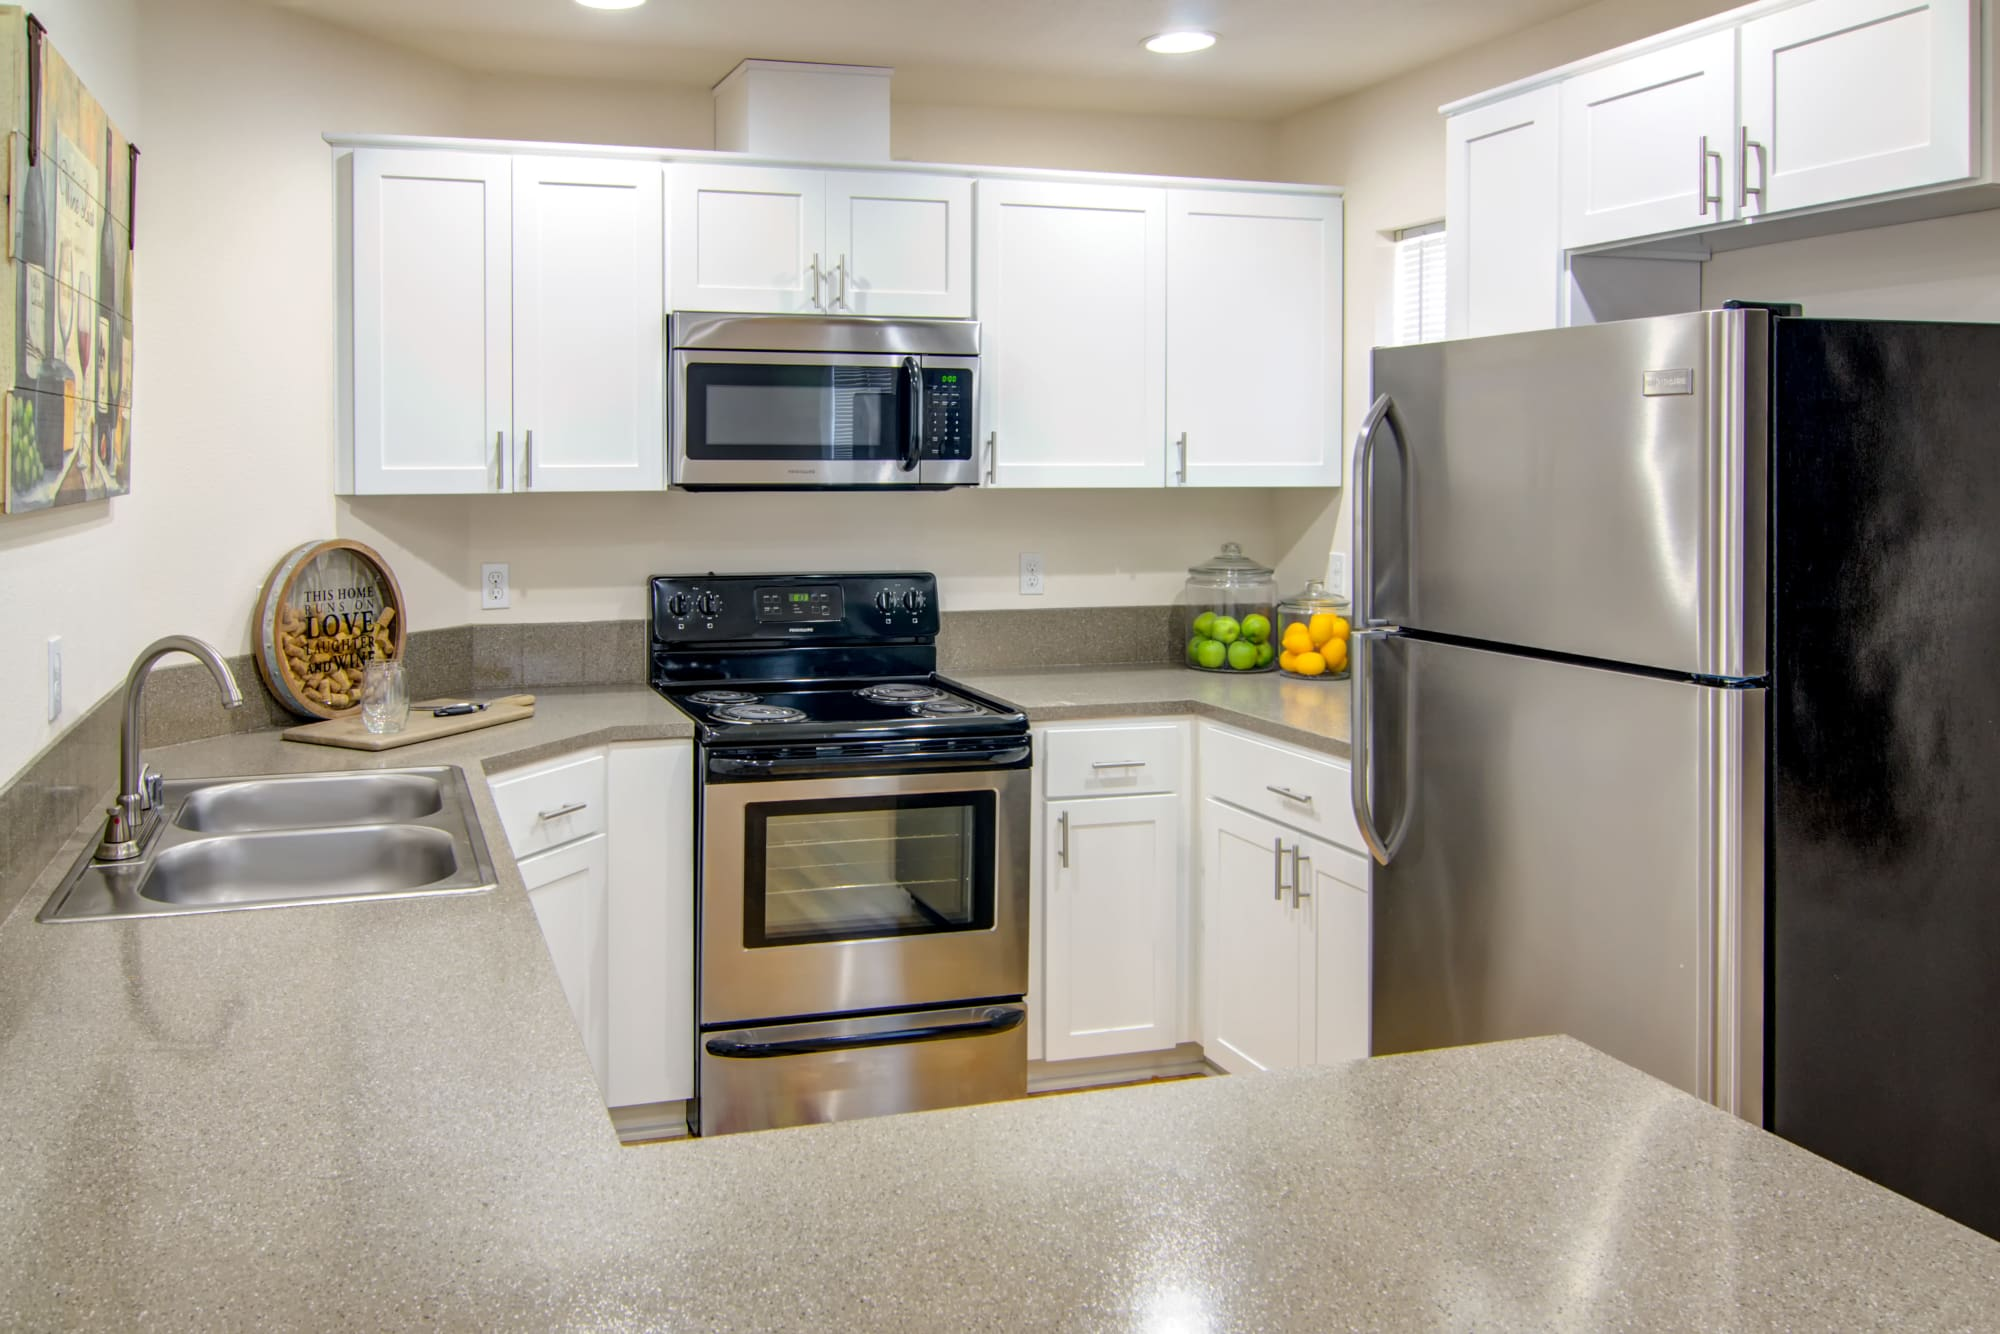 White kitchen with stainless steel appliances at The Addison Apartments in Vancouver, Washington